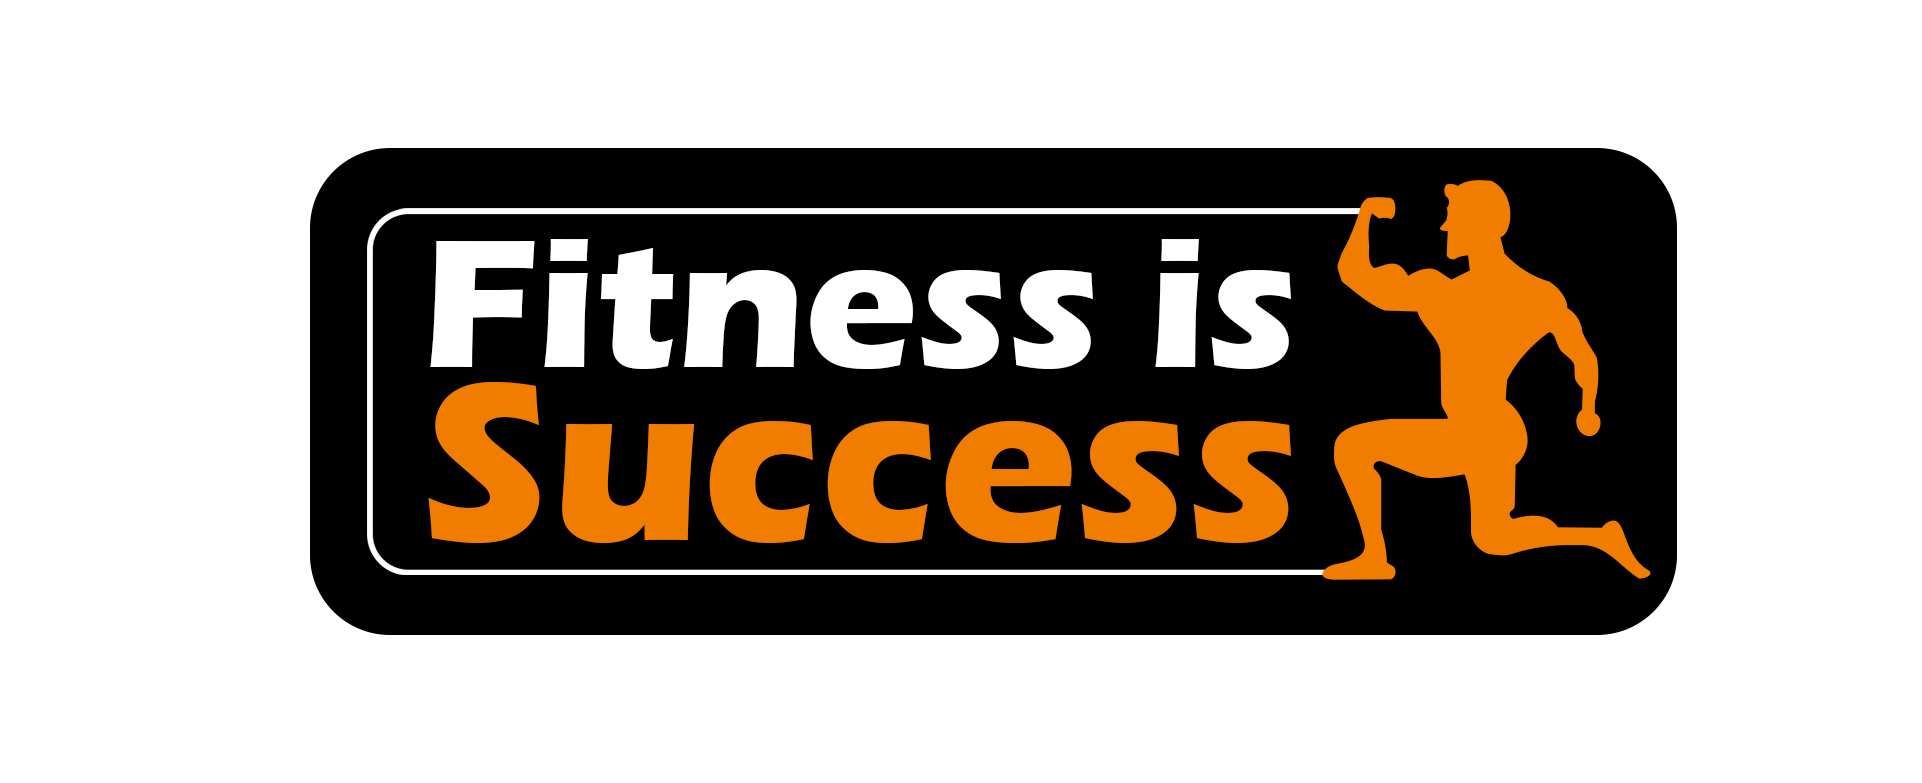 Great Support Team | Fitness is Success